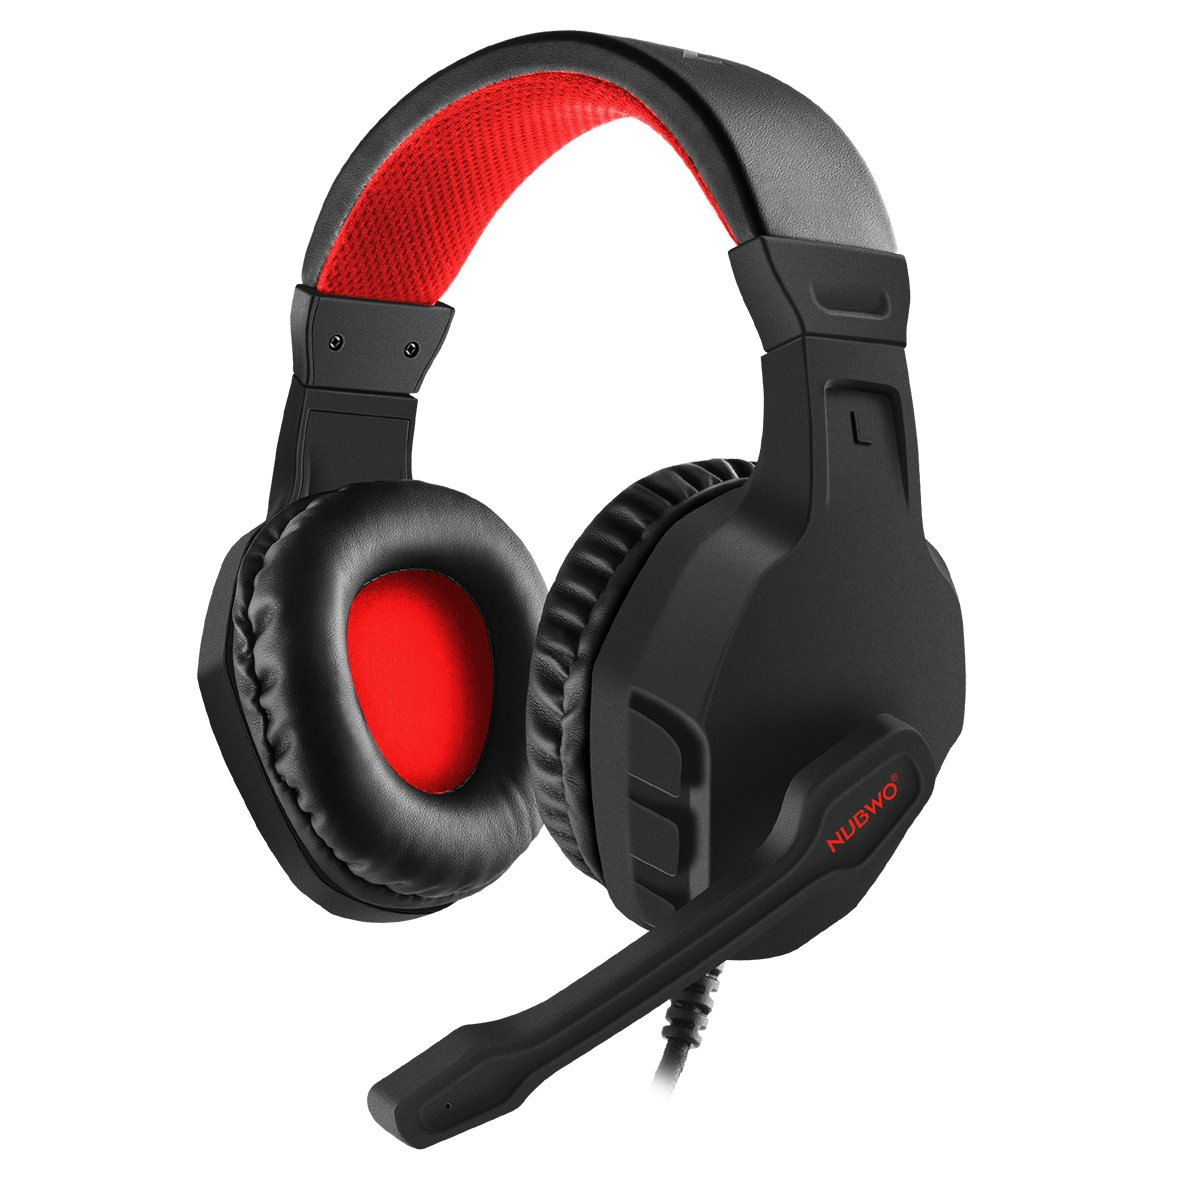 NUBWO U3 3.5mm Gaming Headset for PC, PS4, Laptop, Xbox One, Mac, iPad, Nintendo Switch Games, Computer Game Gamer Over Ear Flexible Microphone Volume Control with Mic by NUBWO